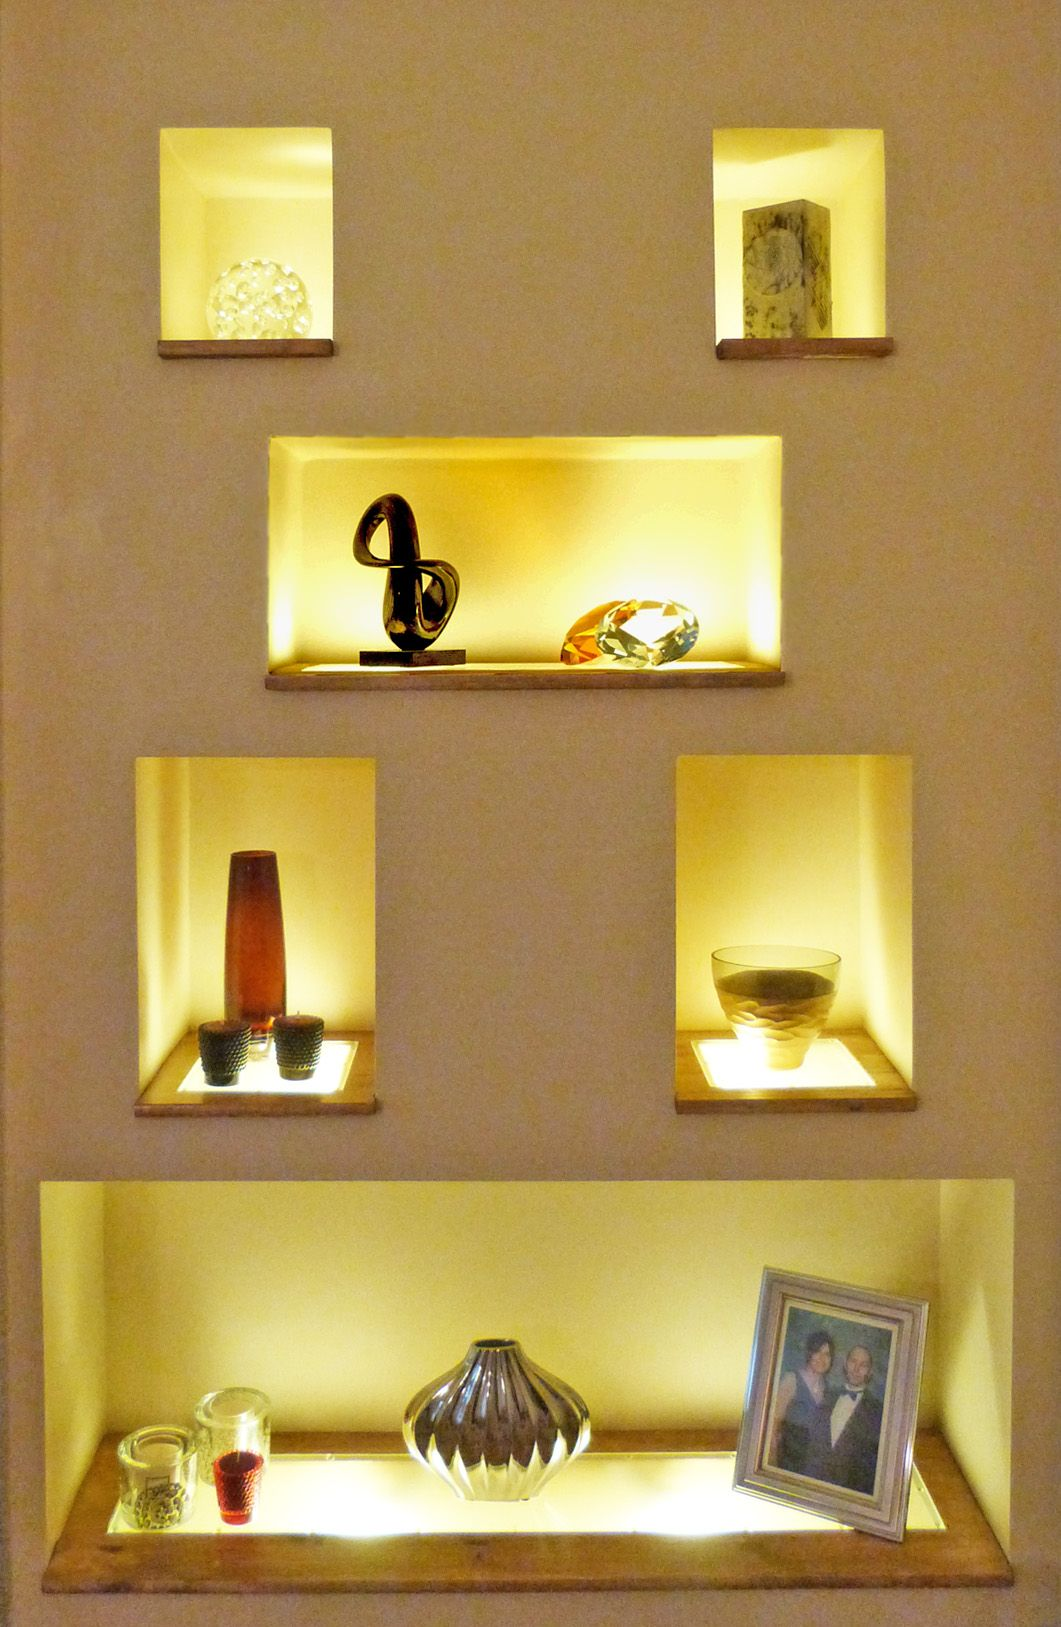 recessed alcove lighting - Google Search | Interiors | Pinterest ...